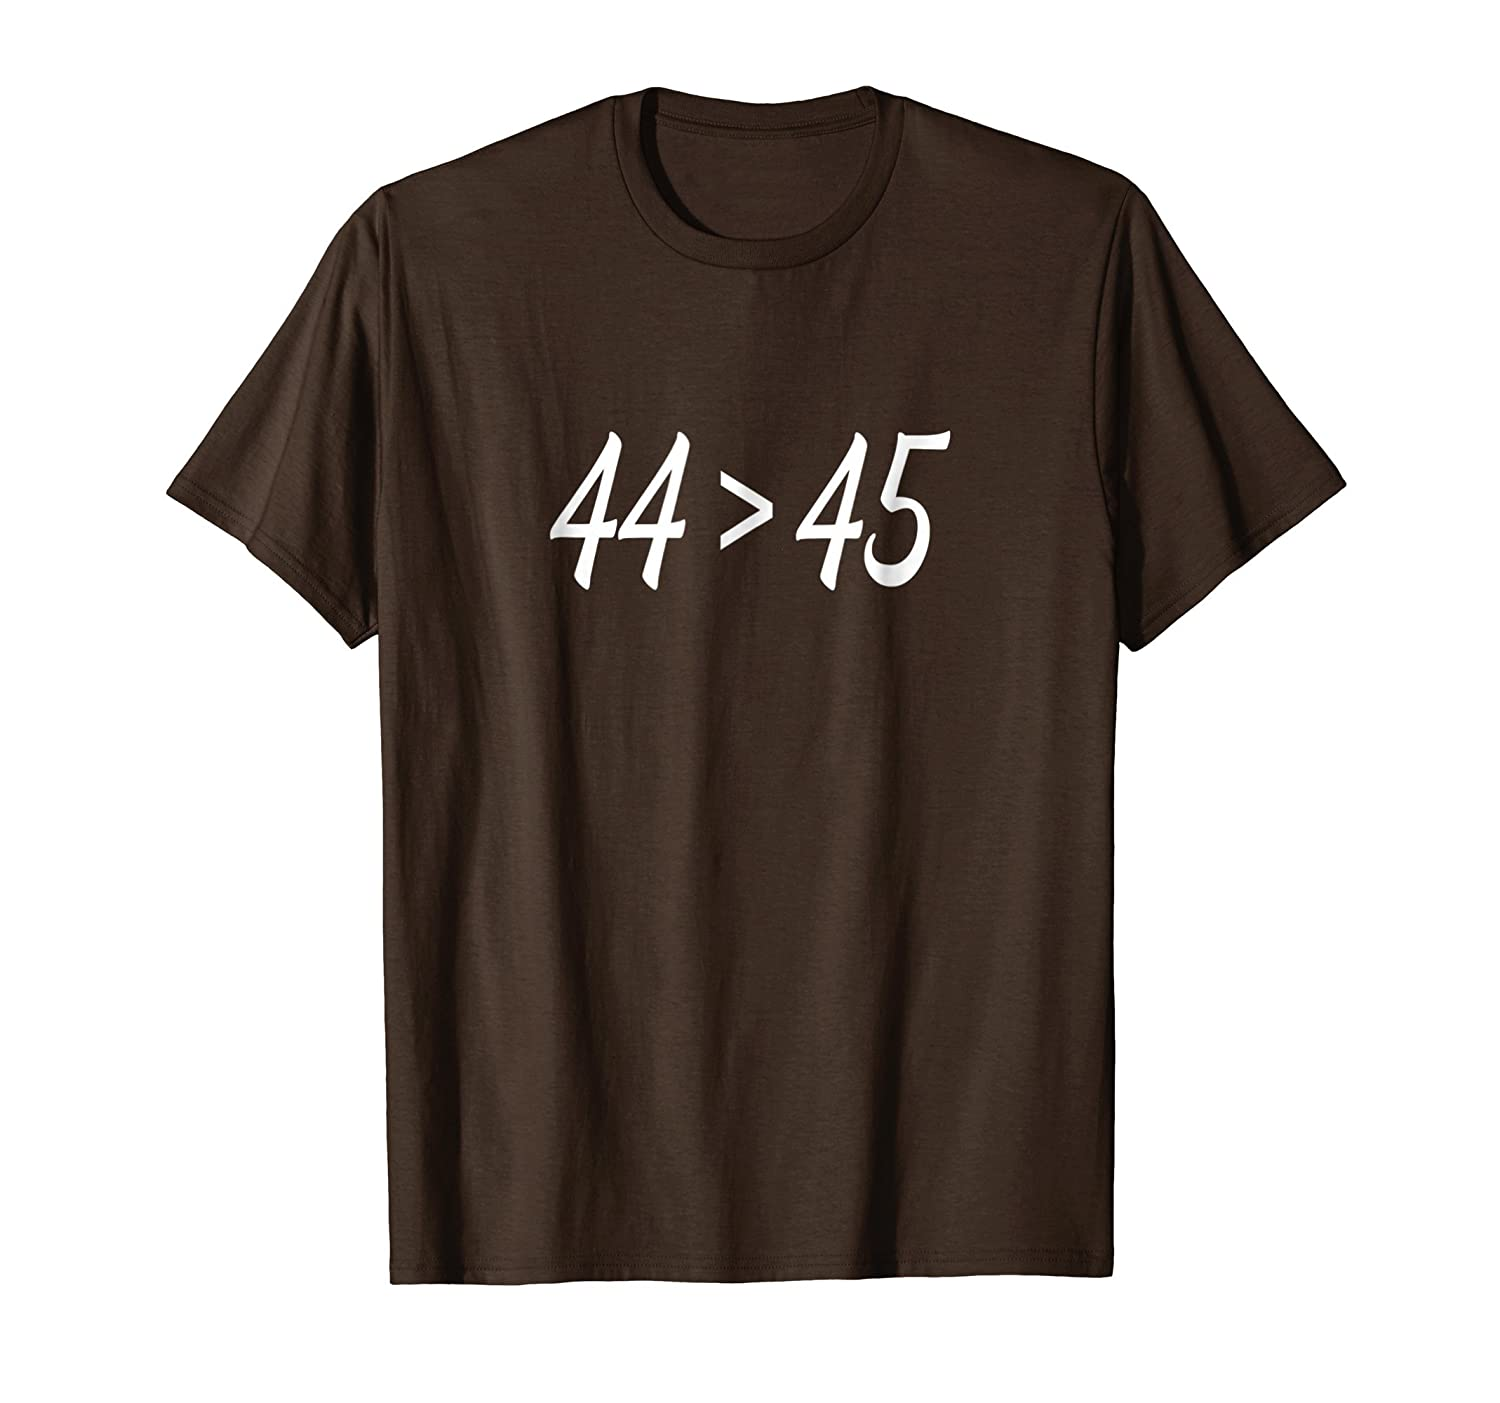 44 > 45, The 44th President is Greater Than The 45th – Shirt-fa